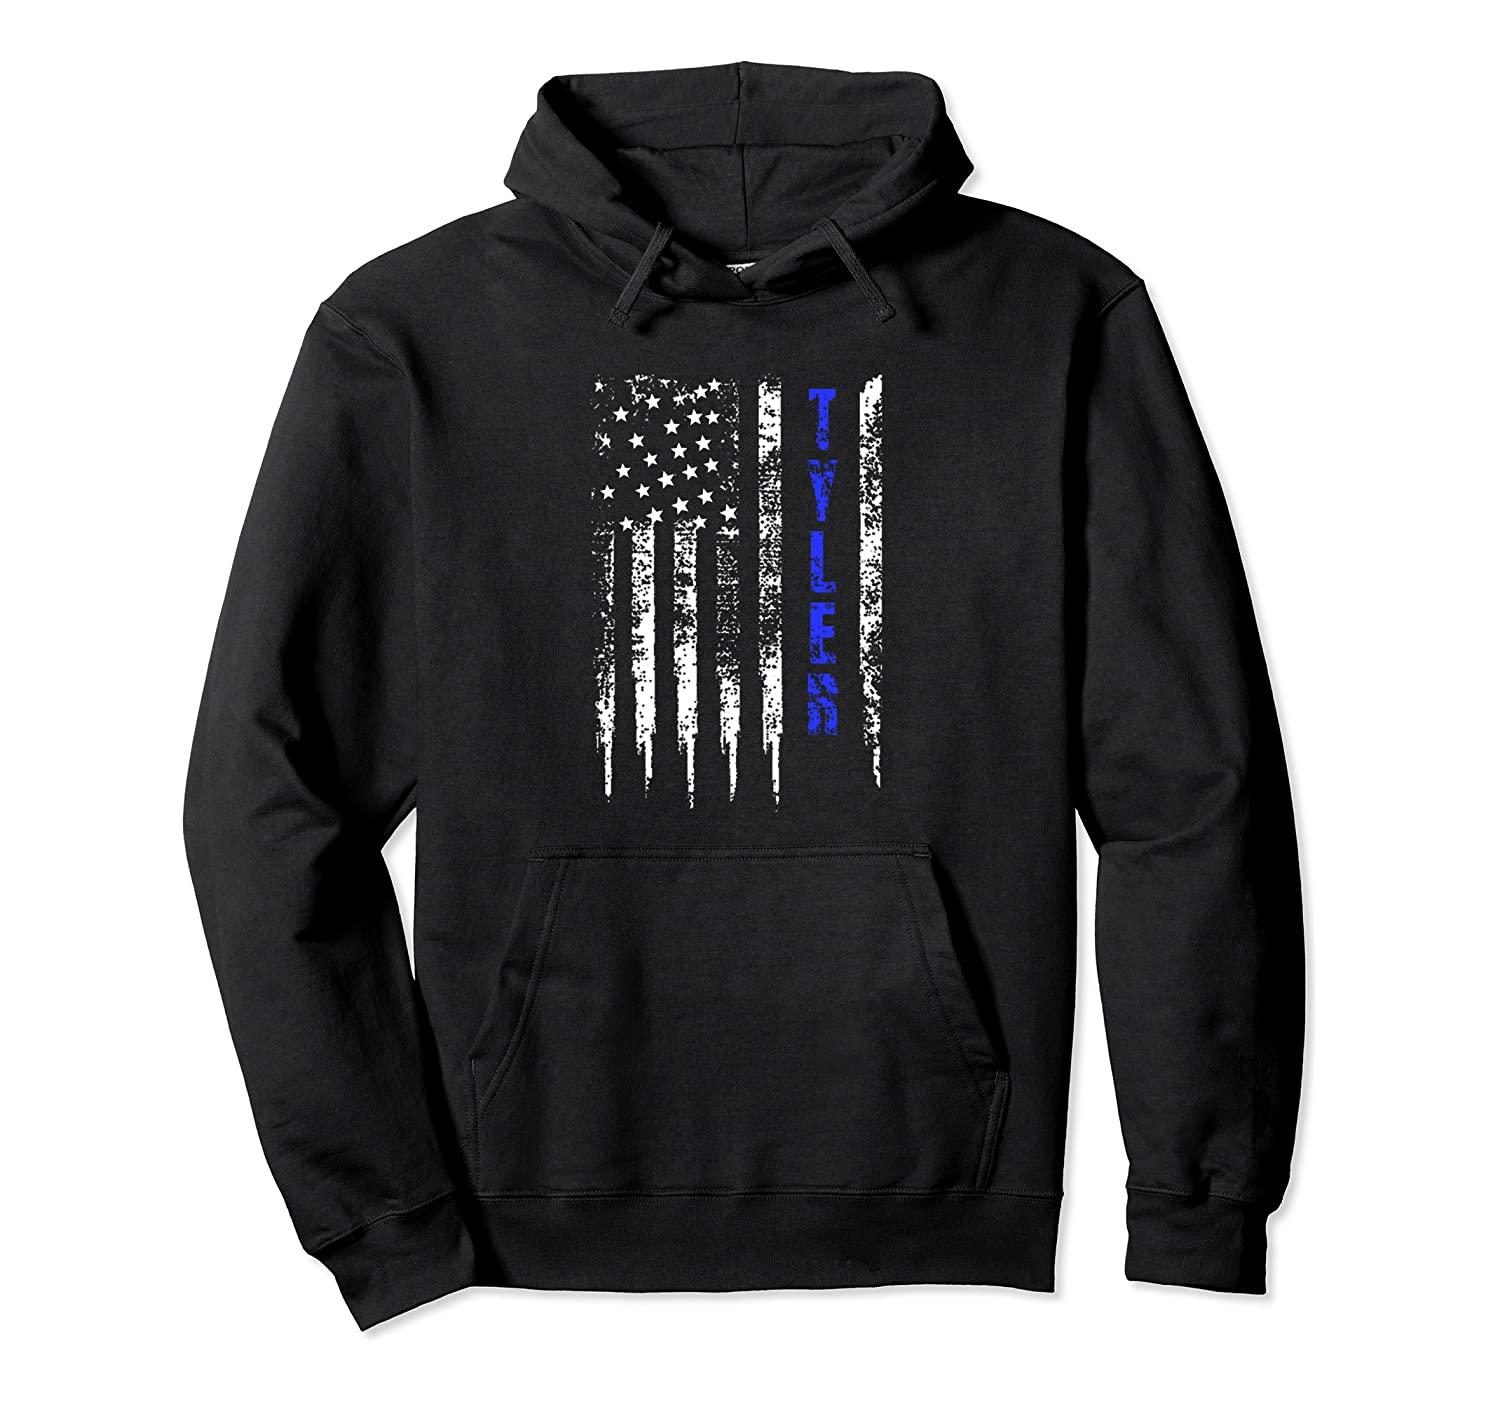 Blue Line Tyler Texas Distressed National Police Week PulloverHoodie Unisex Größe S-5XL mit Farbe Schwarz / Grau / Navy / Royal Blue / Düster Heather